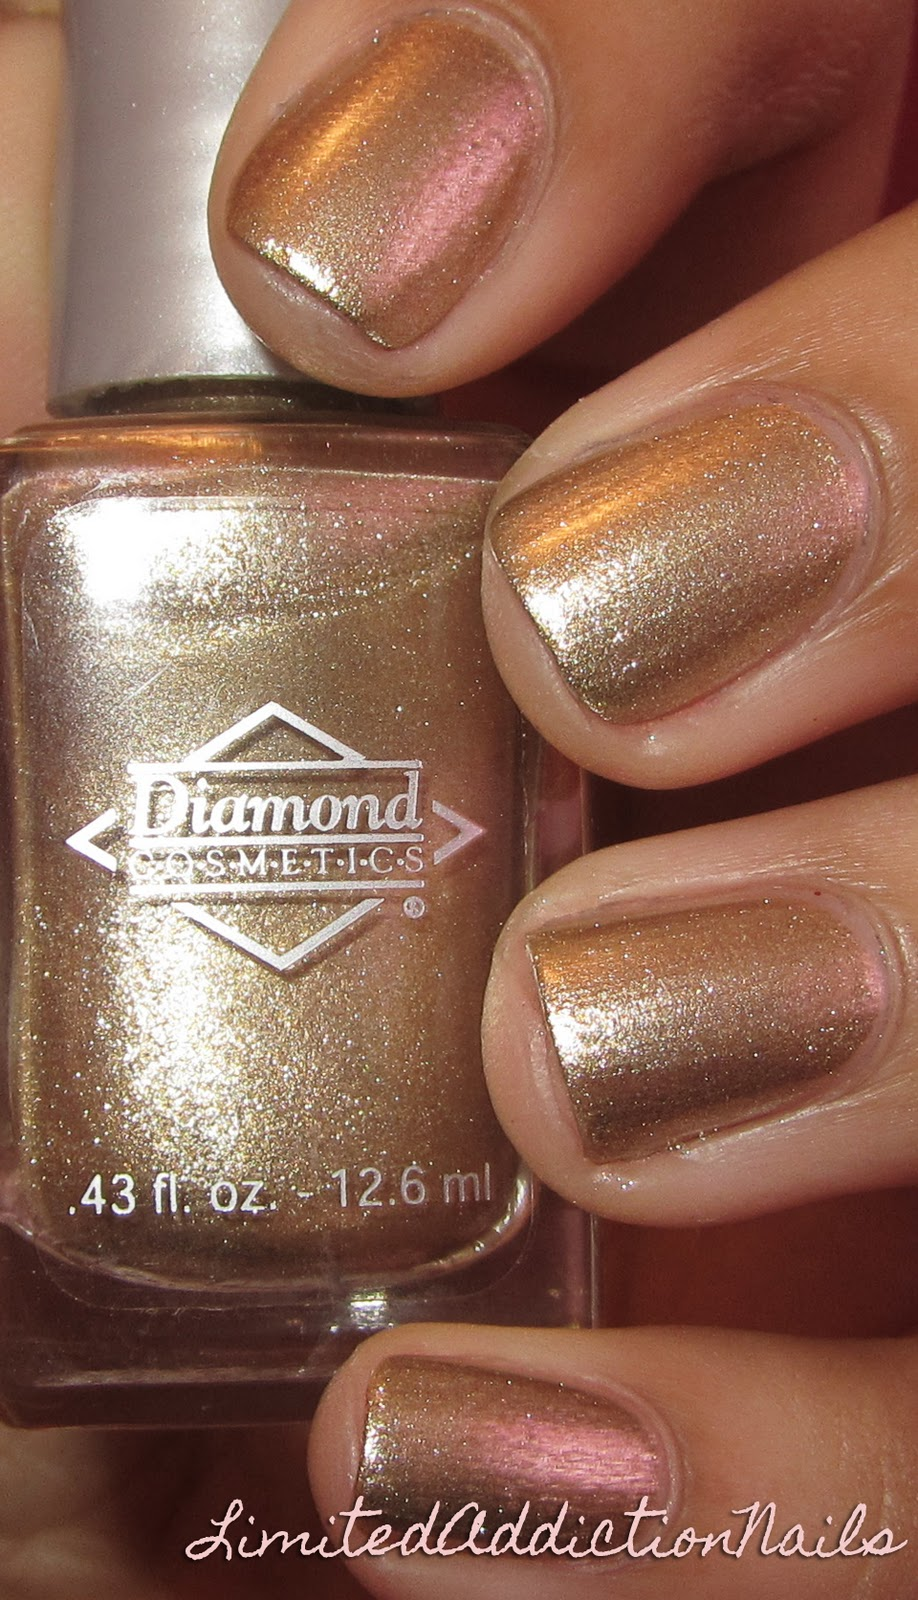 LimitedAddictionNails: Diamond Cosmetics - Gold Foil